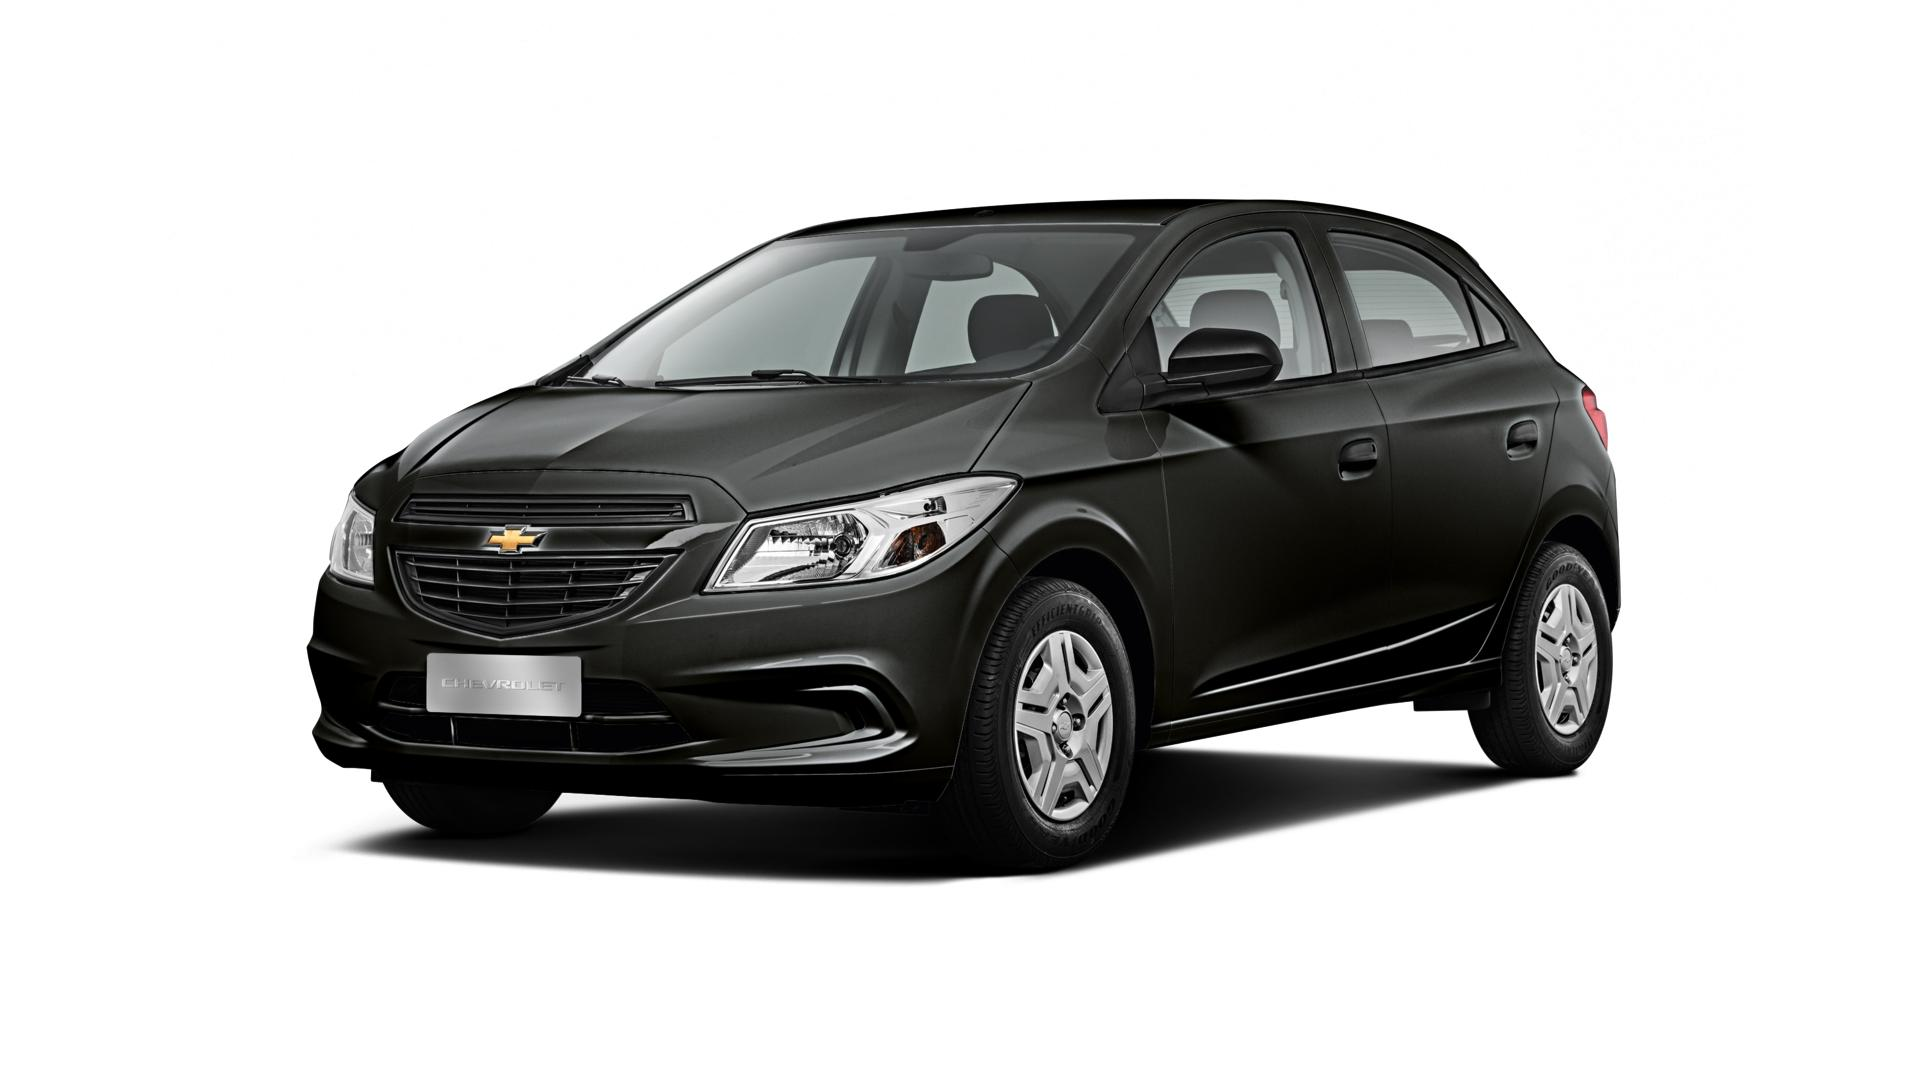 CHEVROLET ONIX JOY 1.0L SPE/4 2019